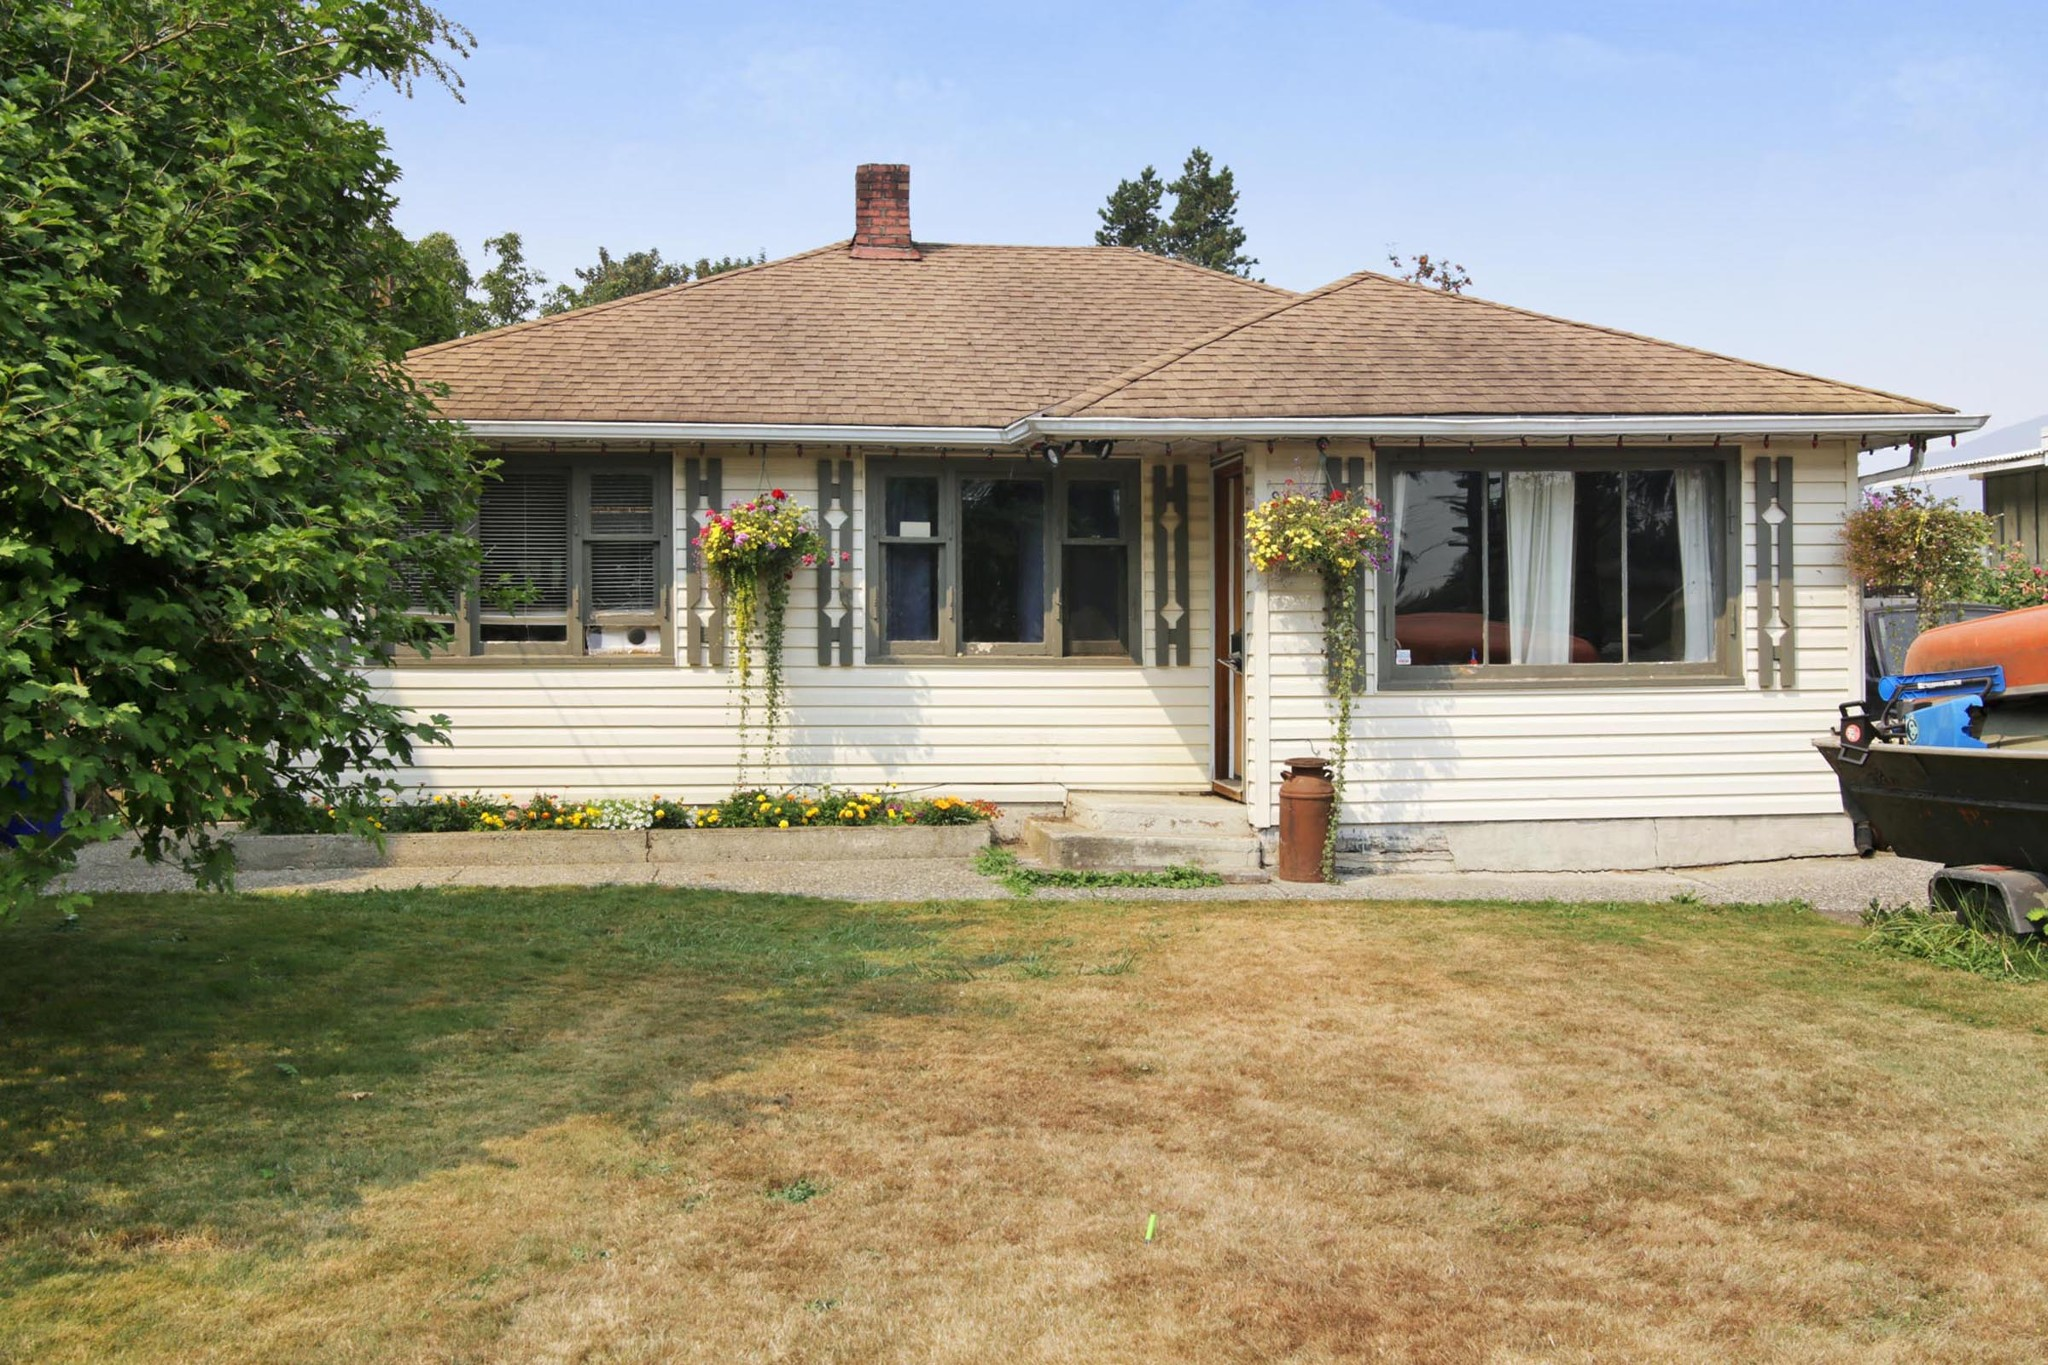 Main Photo: 9525 COOTE Street in Chilliwack: Chilliwack E Young-Yale House for sale : MLS®# R2294376